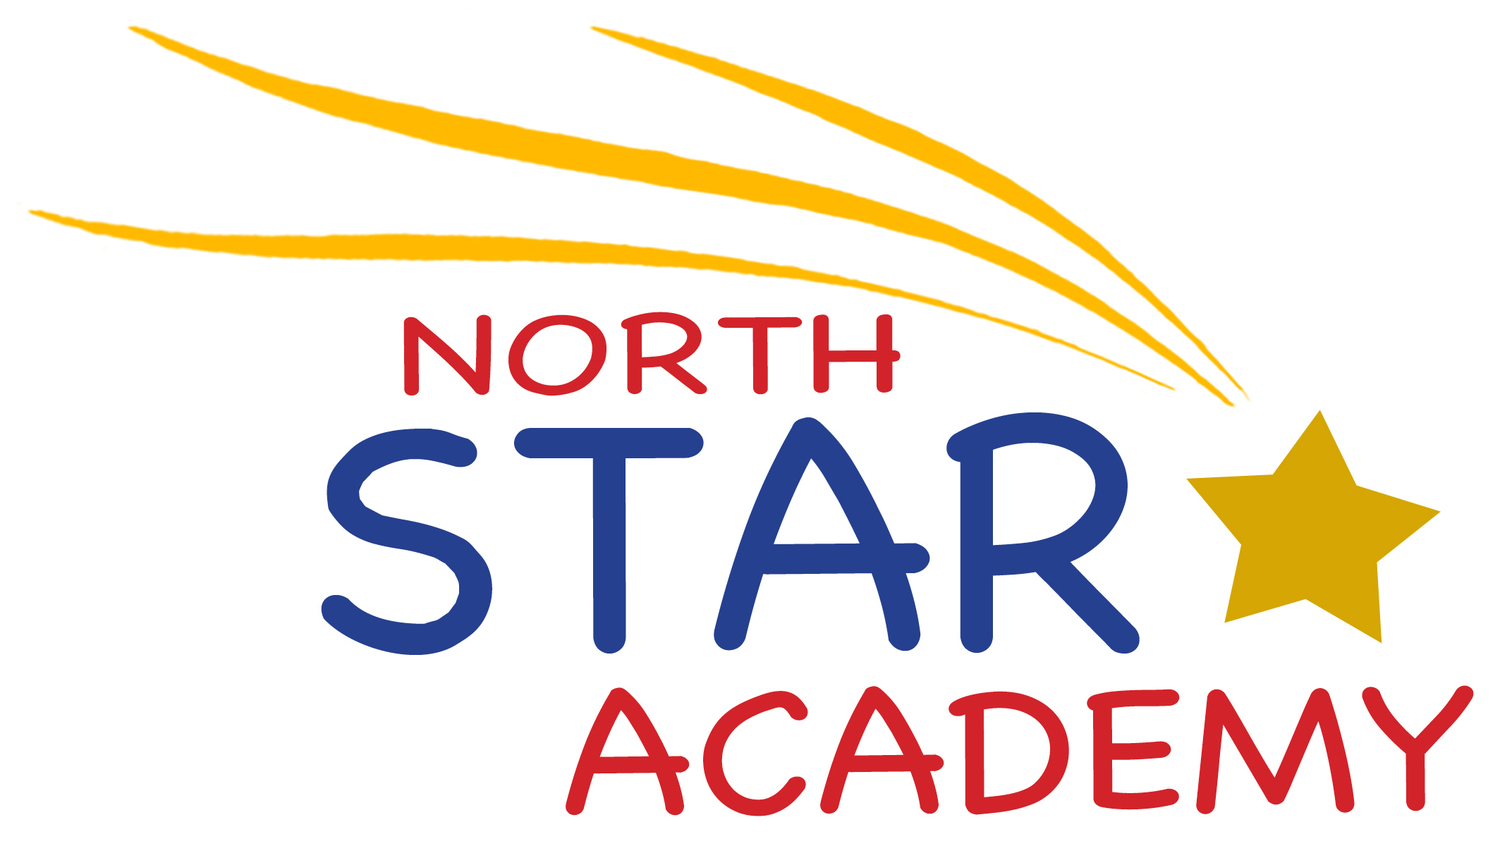 The North Star Academy